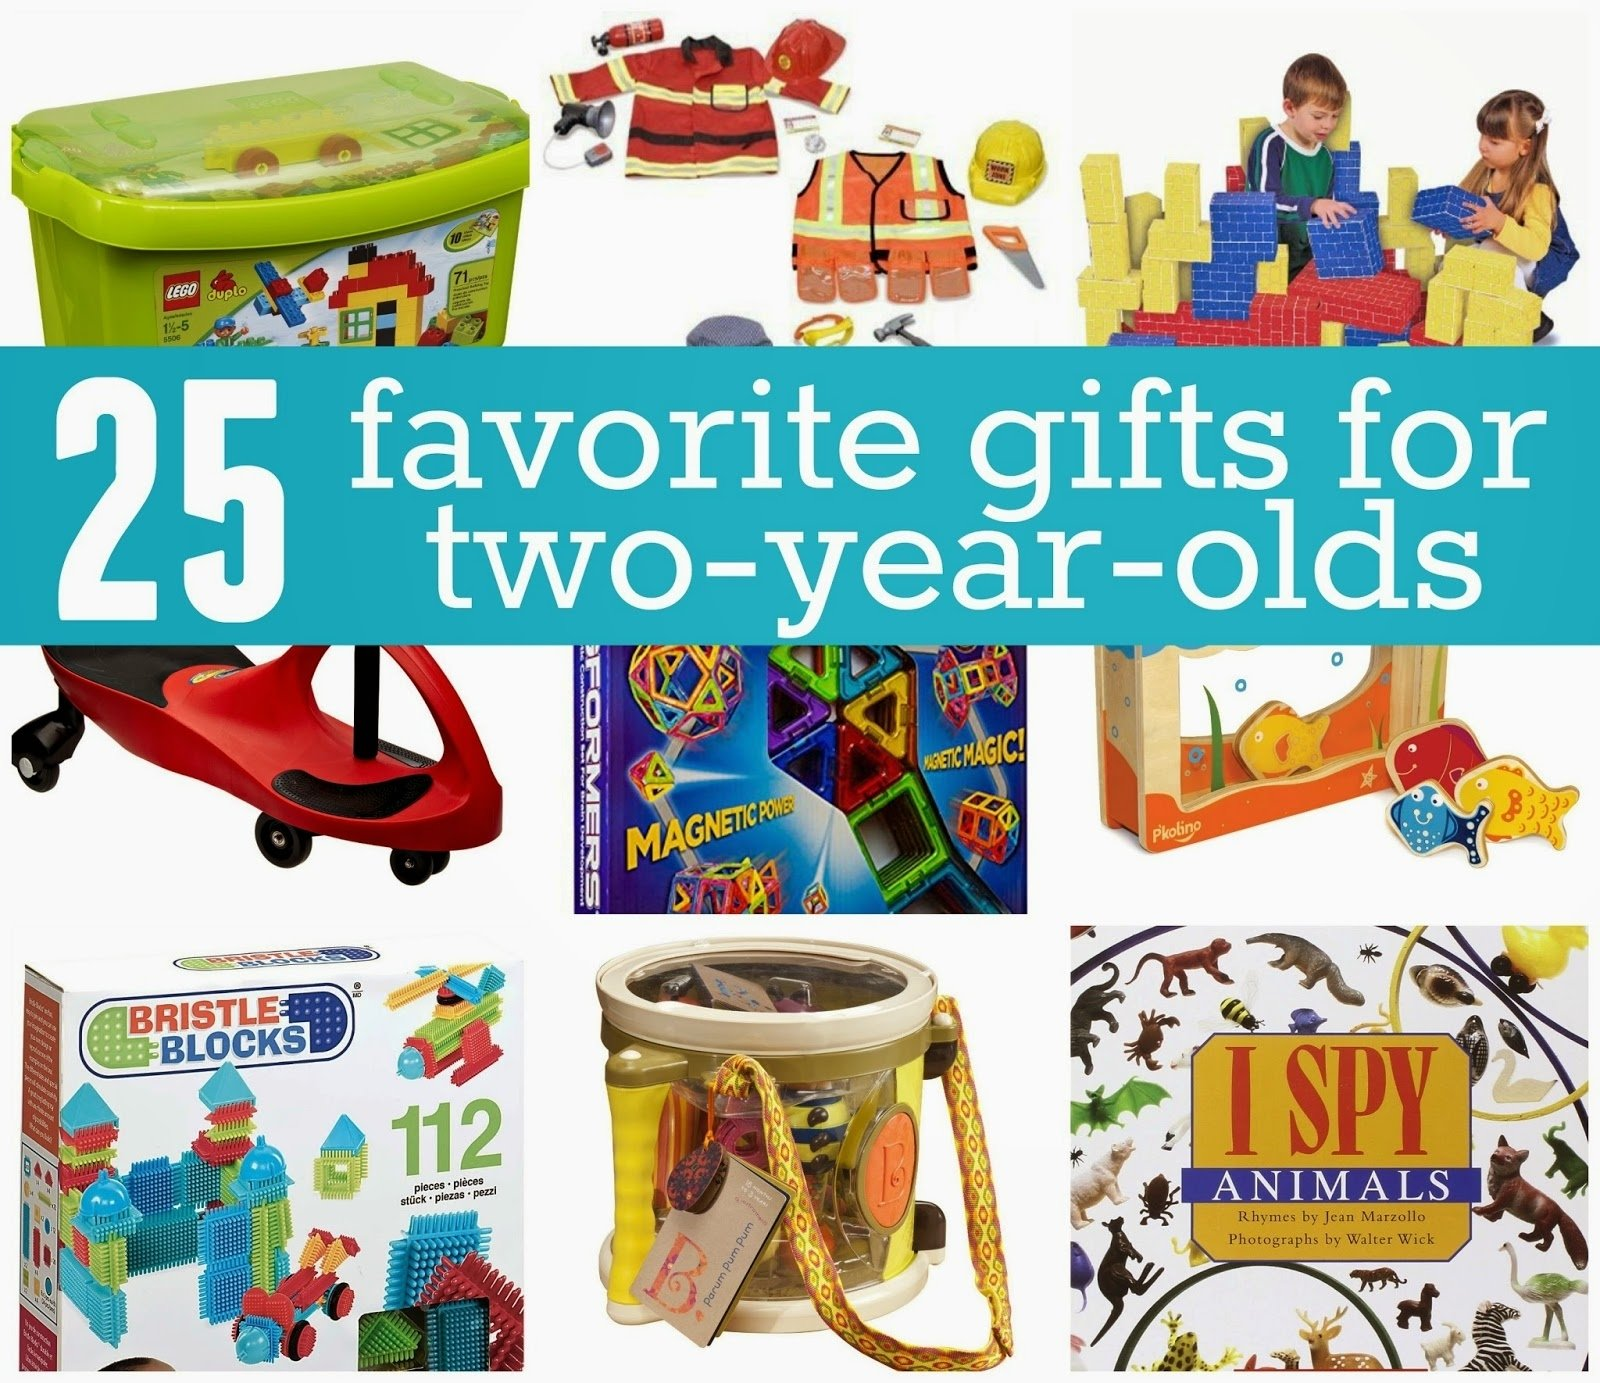 10 Nice Gift Ideas For 2 Year Olds toddler approved favorite gifts for 2 year olds 4 2020